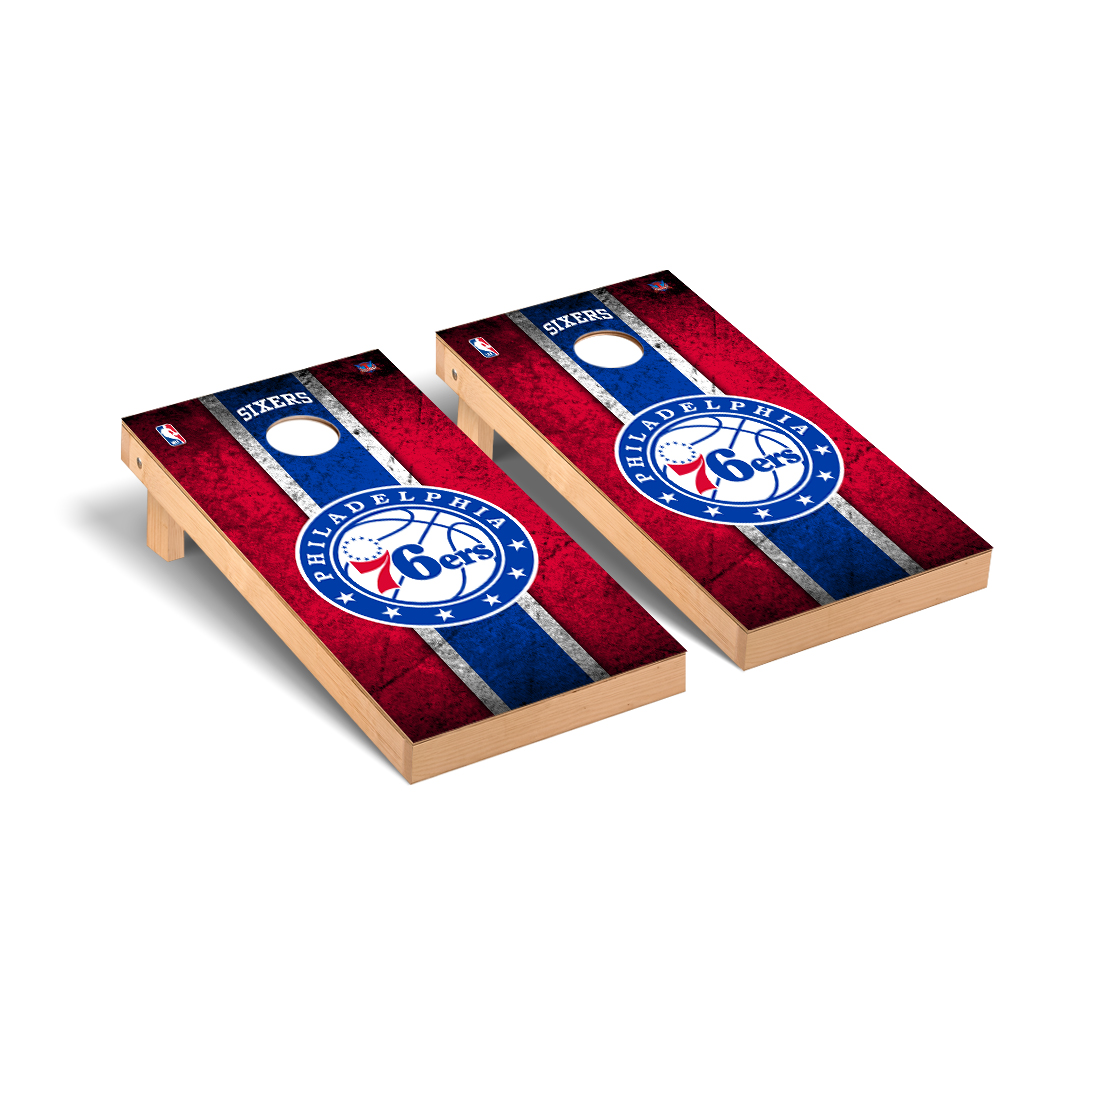 Philadelphia Sixers 76ers NBA Basketball Cornhole Game Set Vintage Version